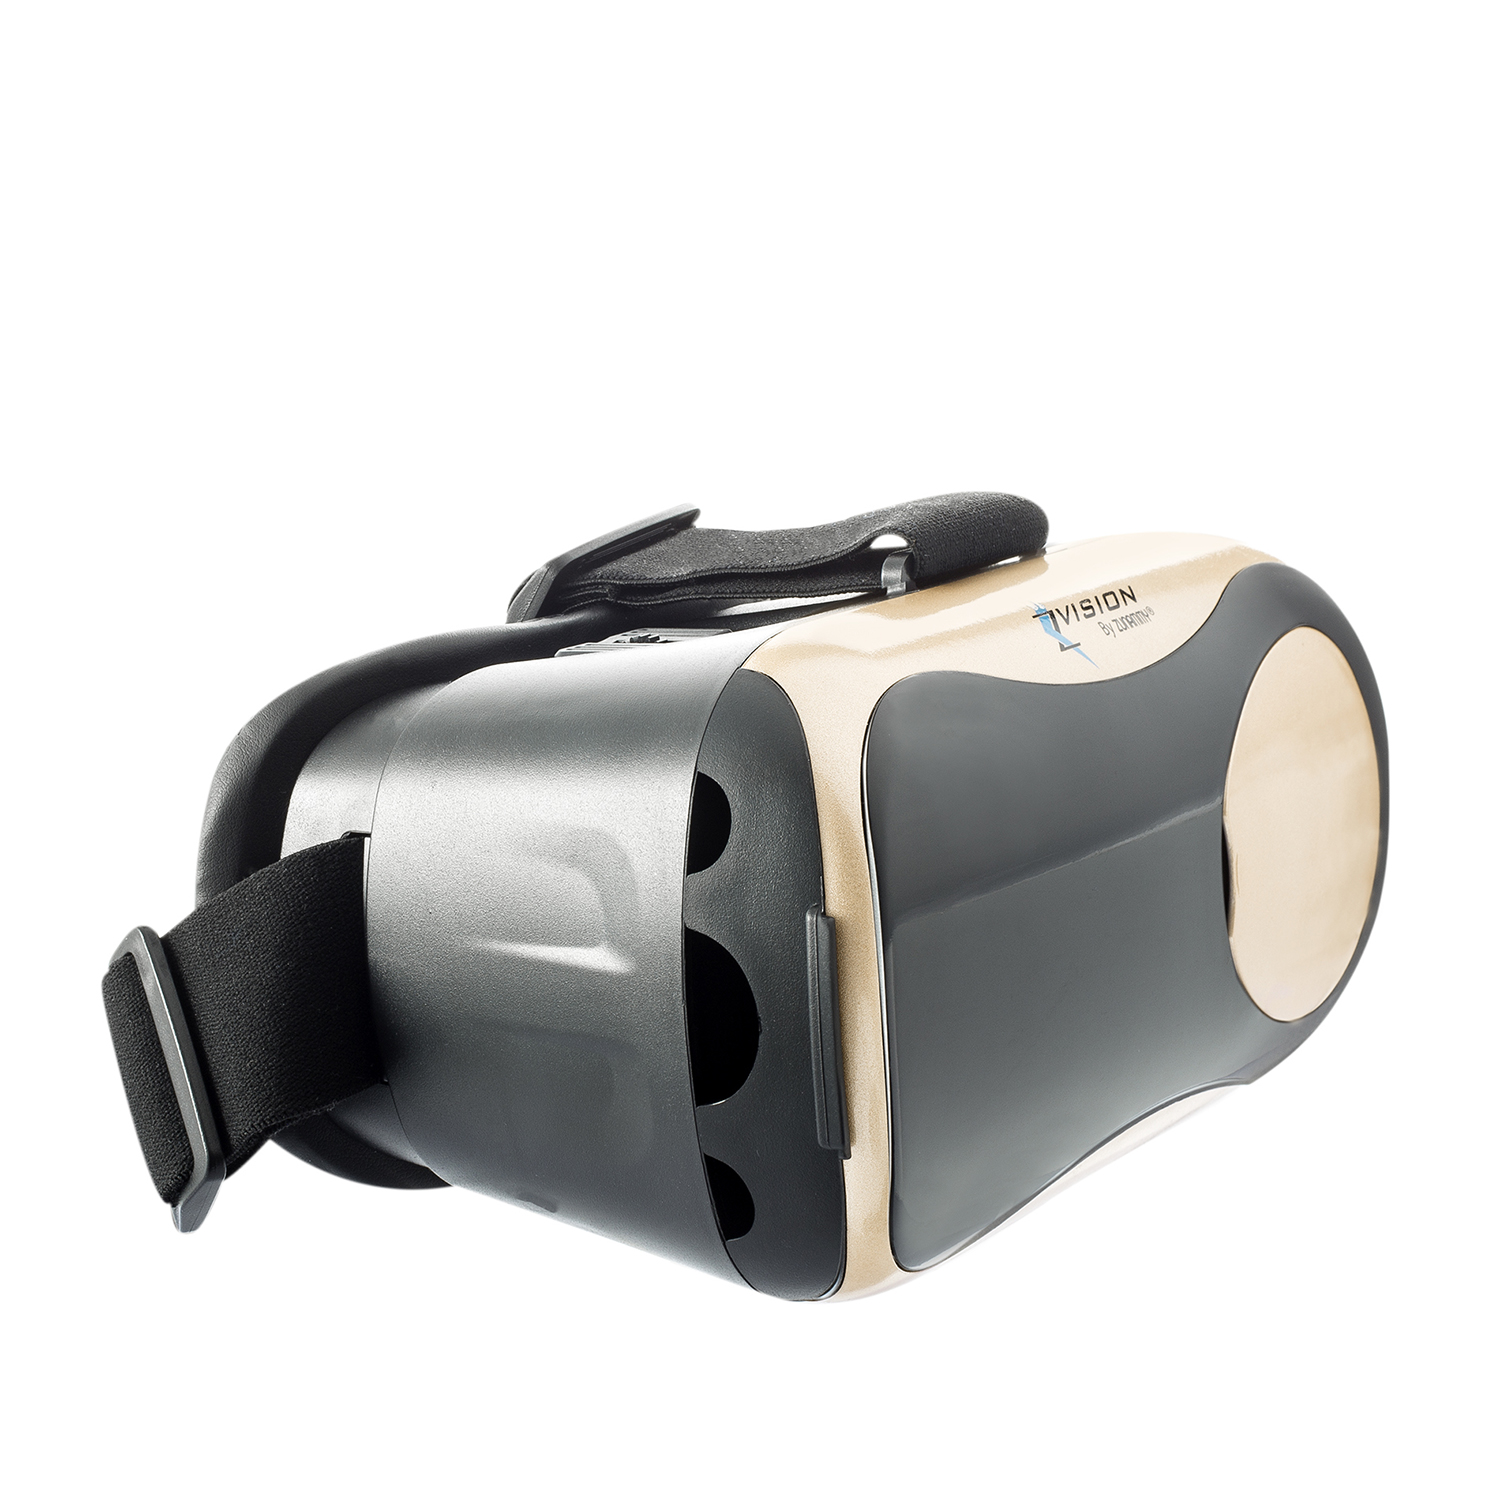 f689ce67410 zvision 360 degree virtual reality headset adjustable goggles for  smartphones ebay